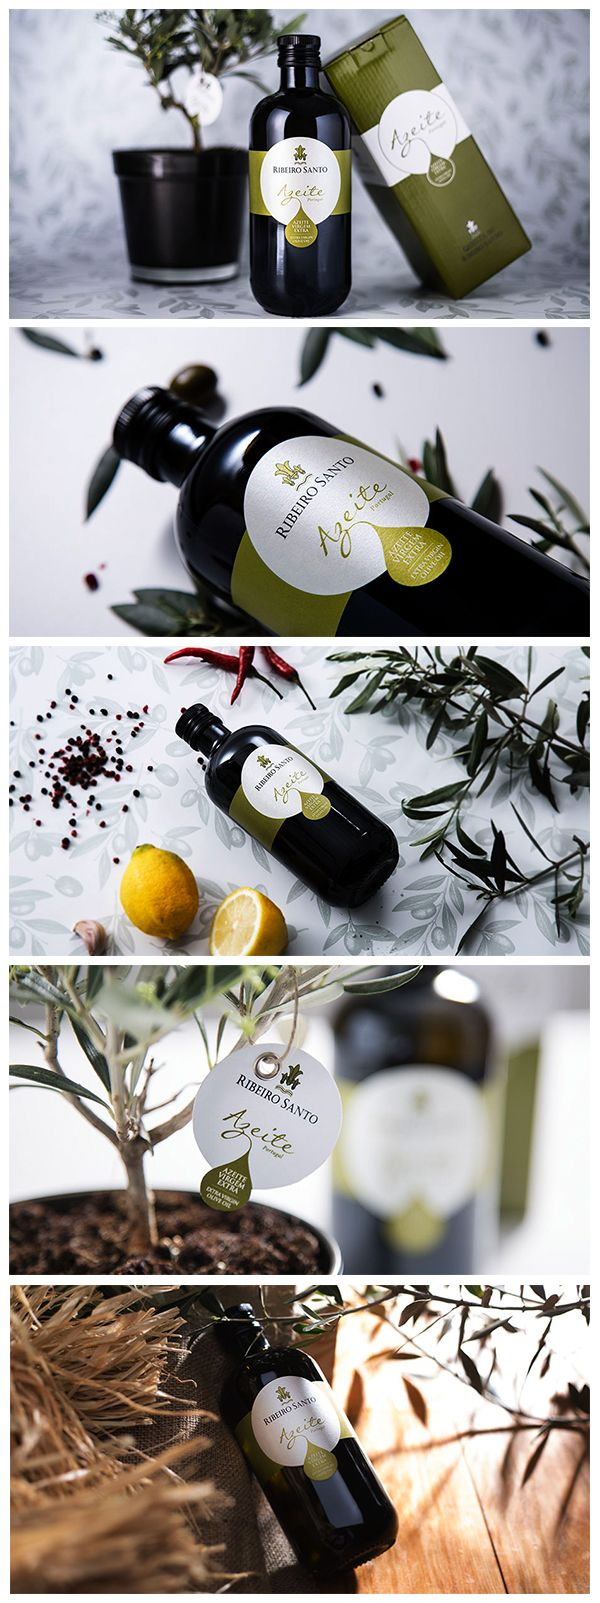 Label Design for Olive Oil. Design de Rótulo para Azeite. The label reflect the lightness, versatility and texture of the product, allowing to communicate all the imagination around the production of olive oil.